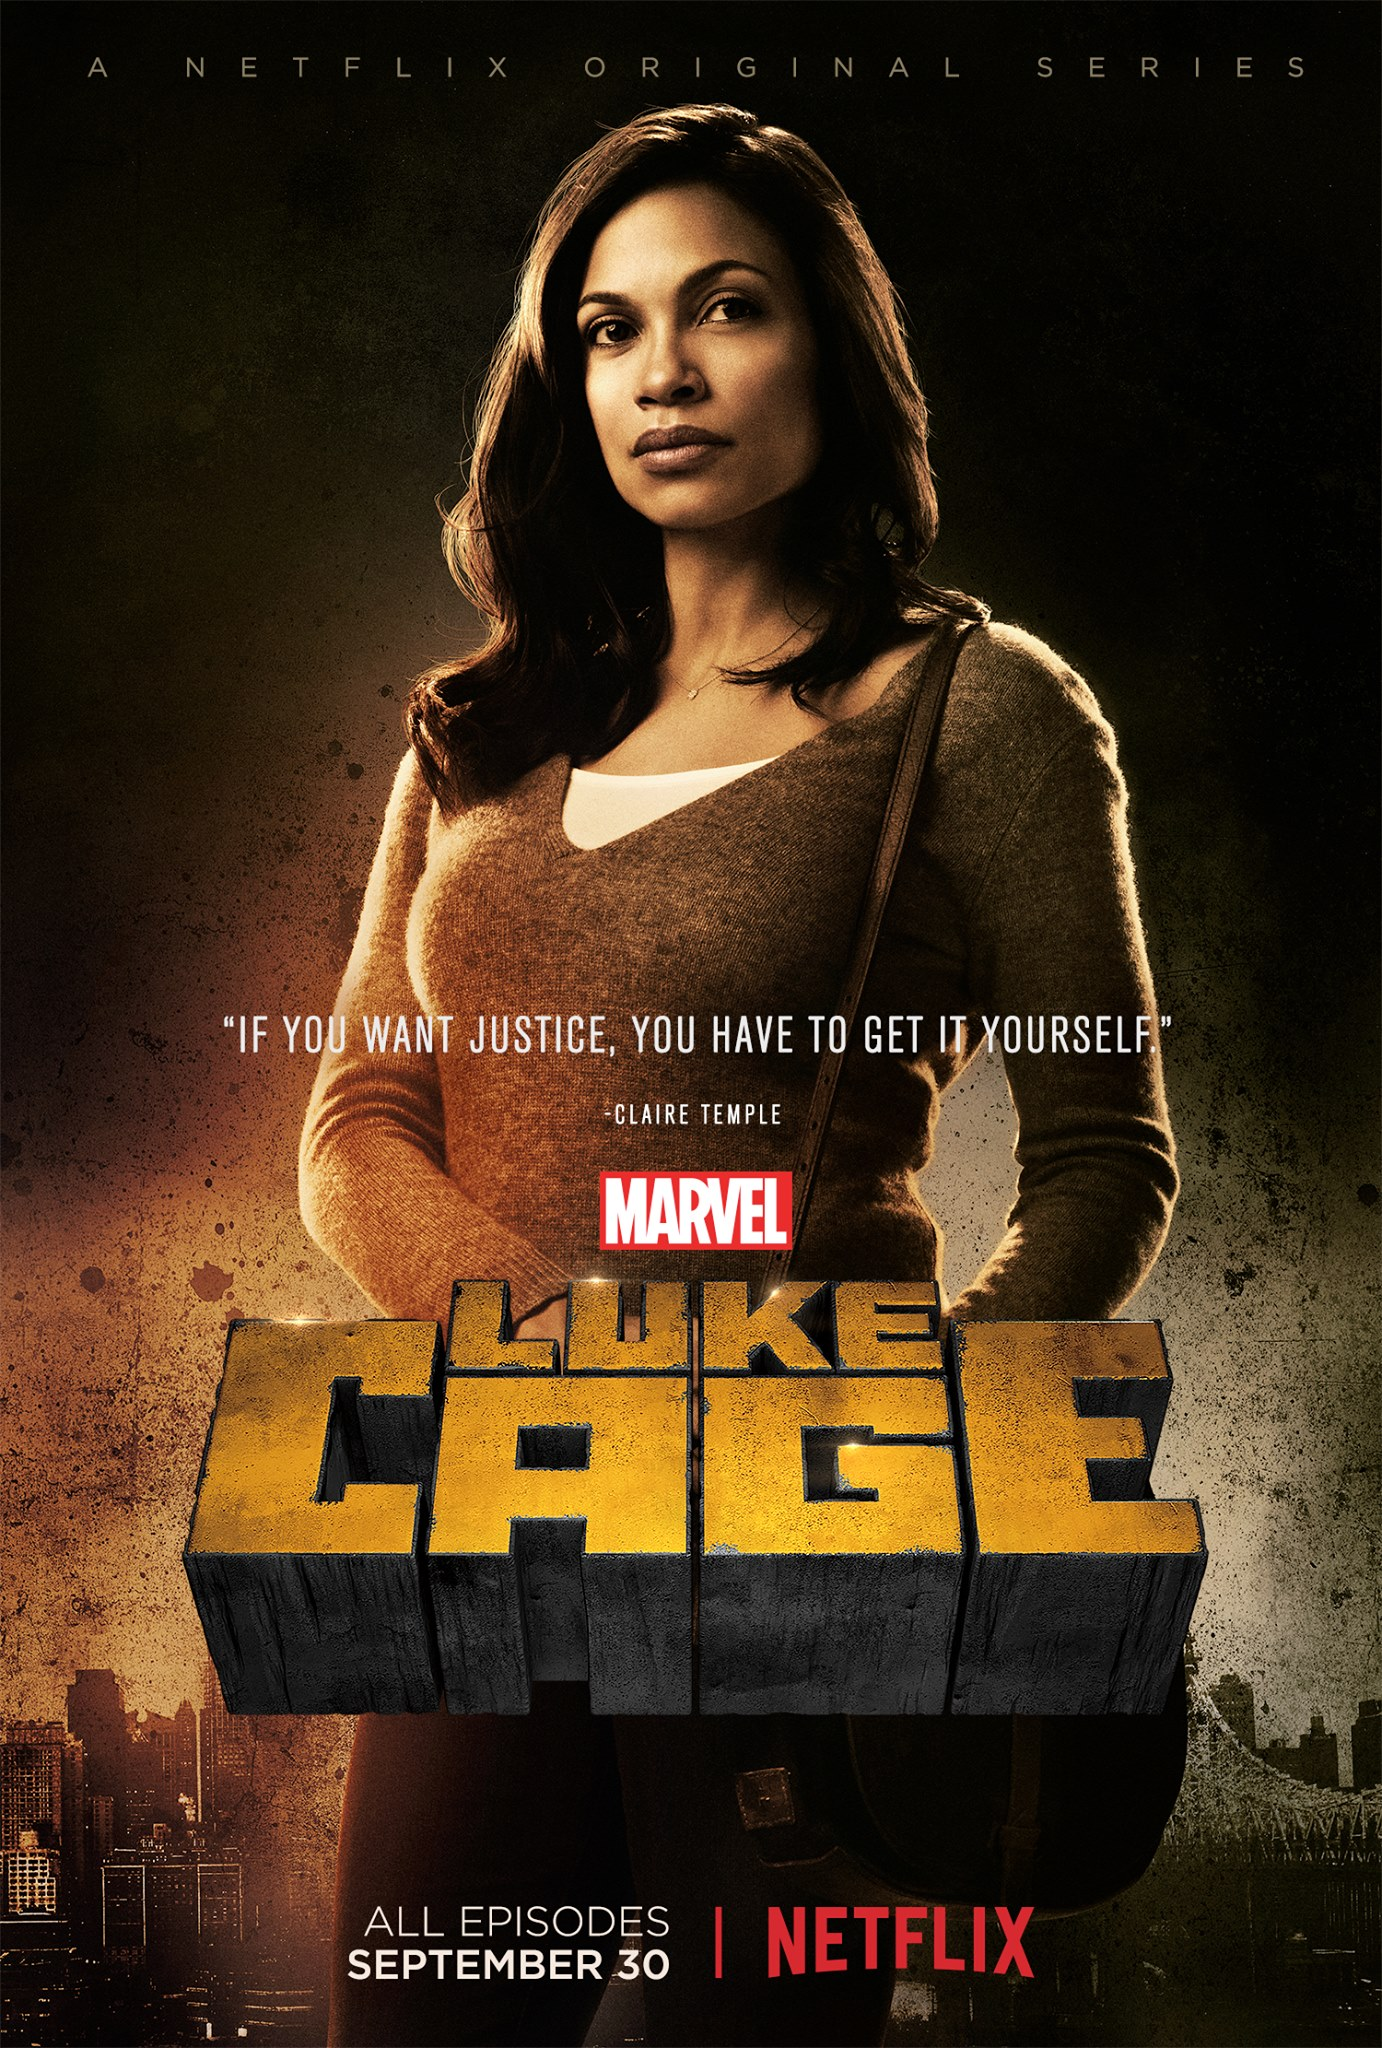 Character poster for Claire Temple in Marvel's Luke Cage!